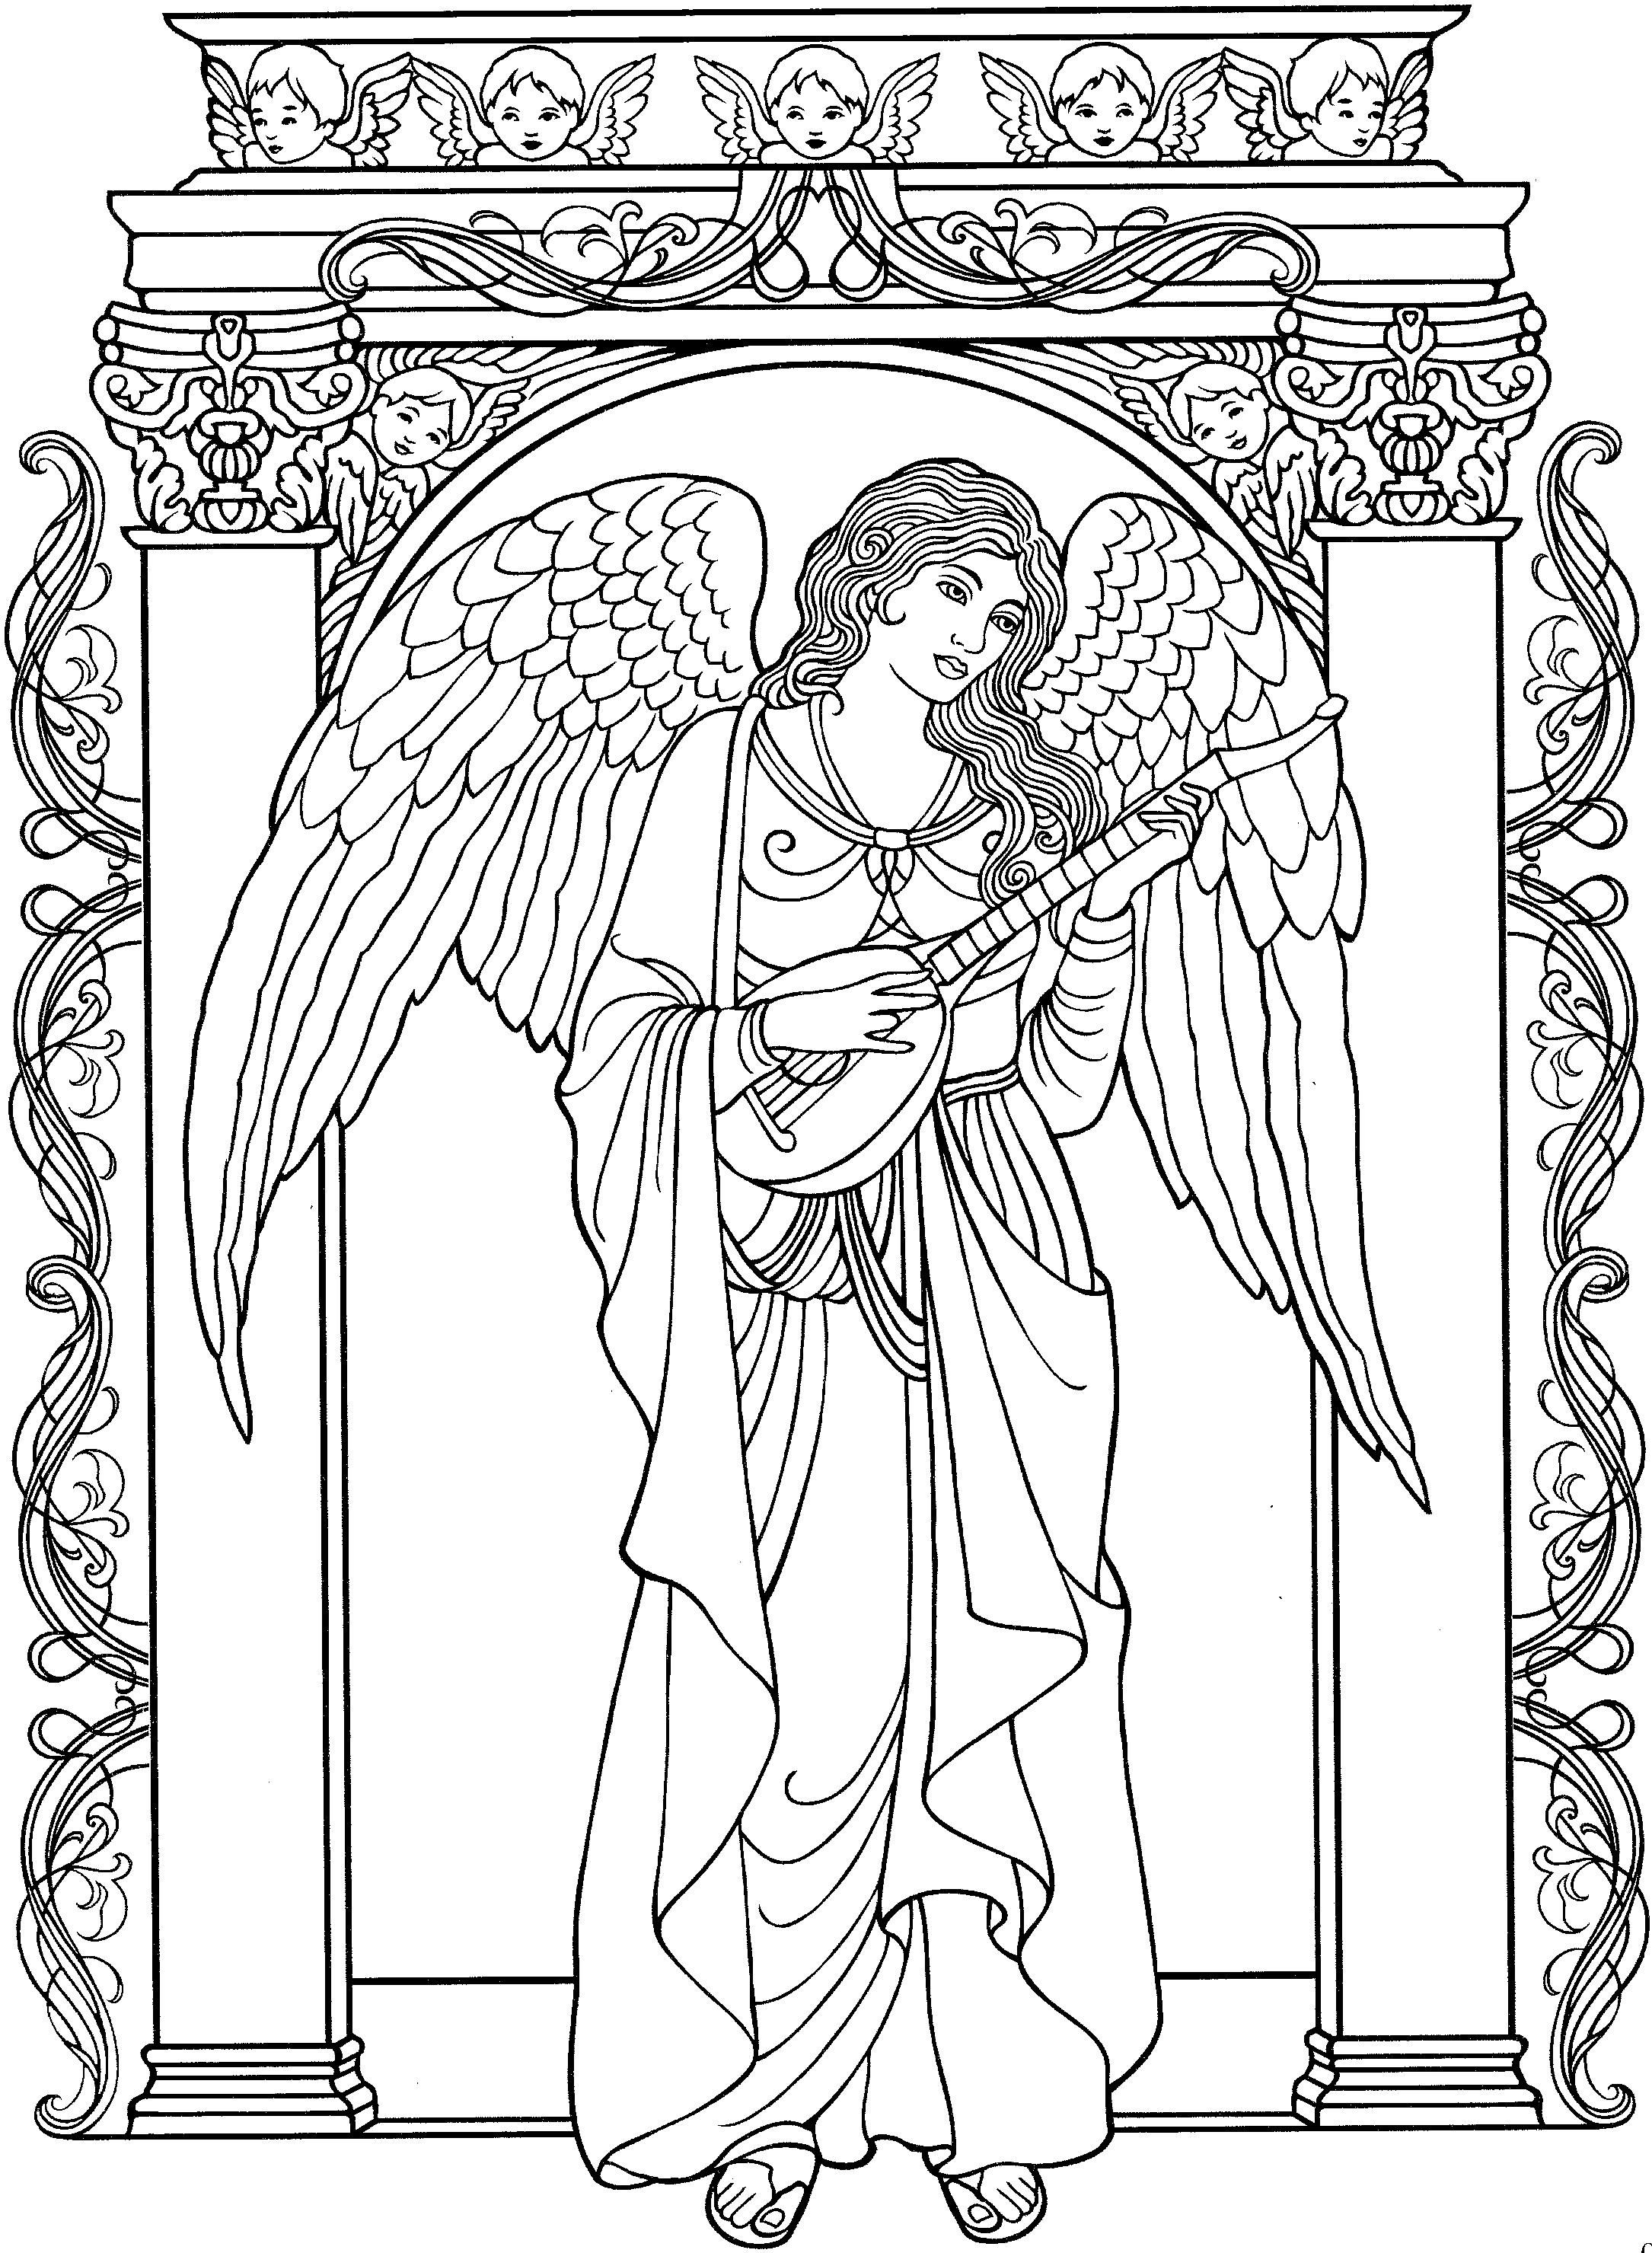 angel coloring sheet angels coloring page graphicsfairy coloring sheet angel